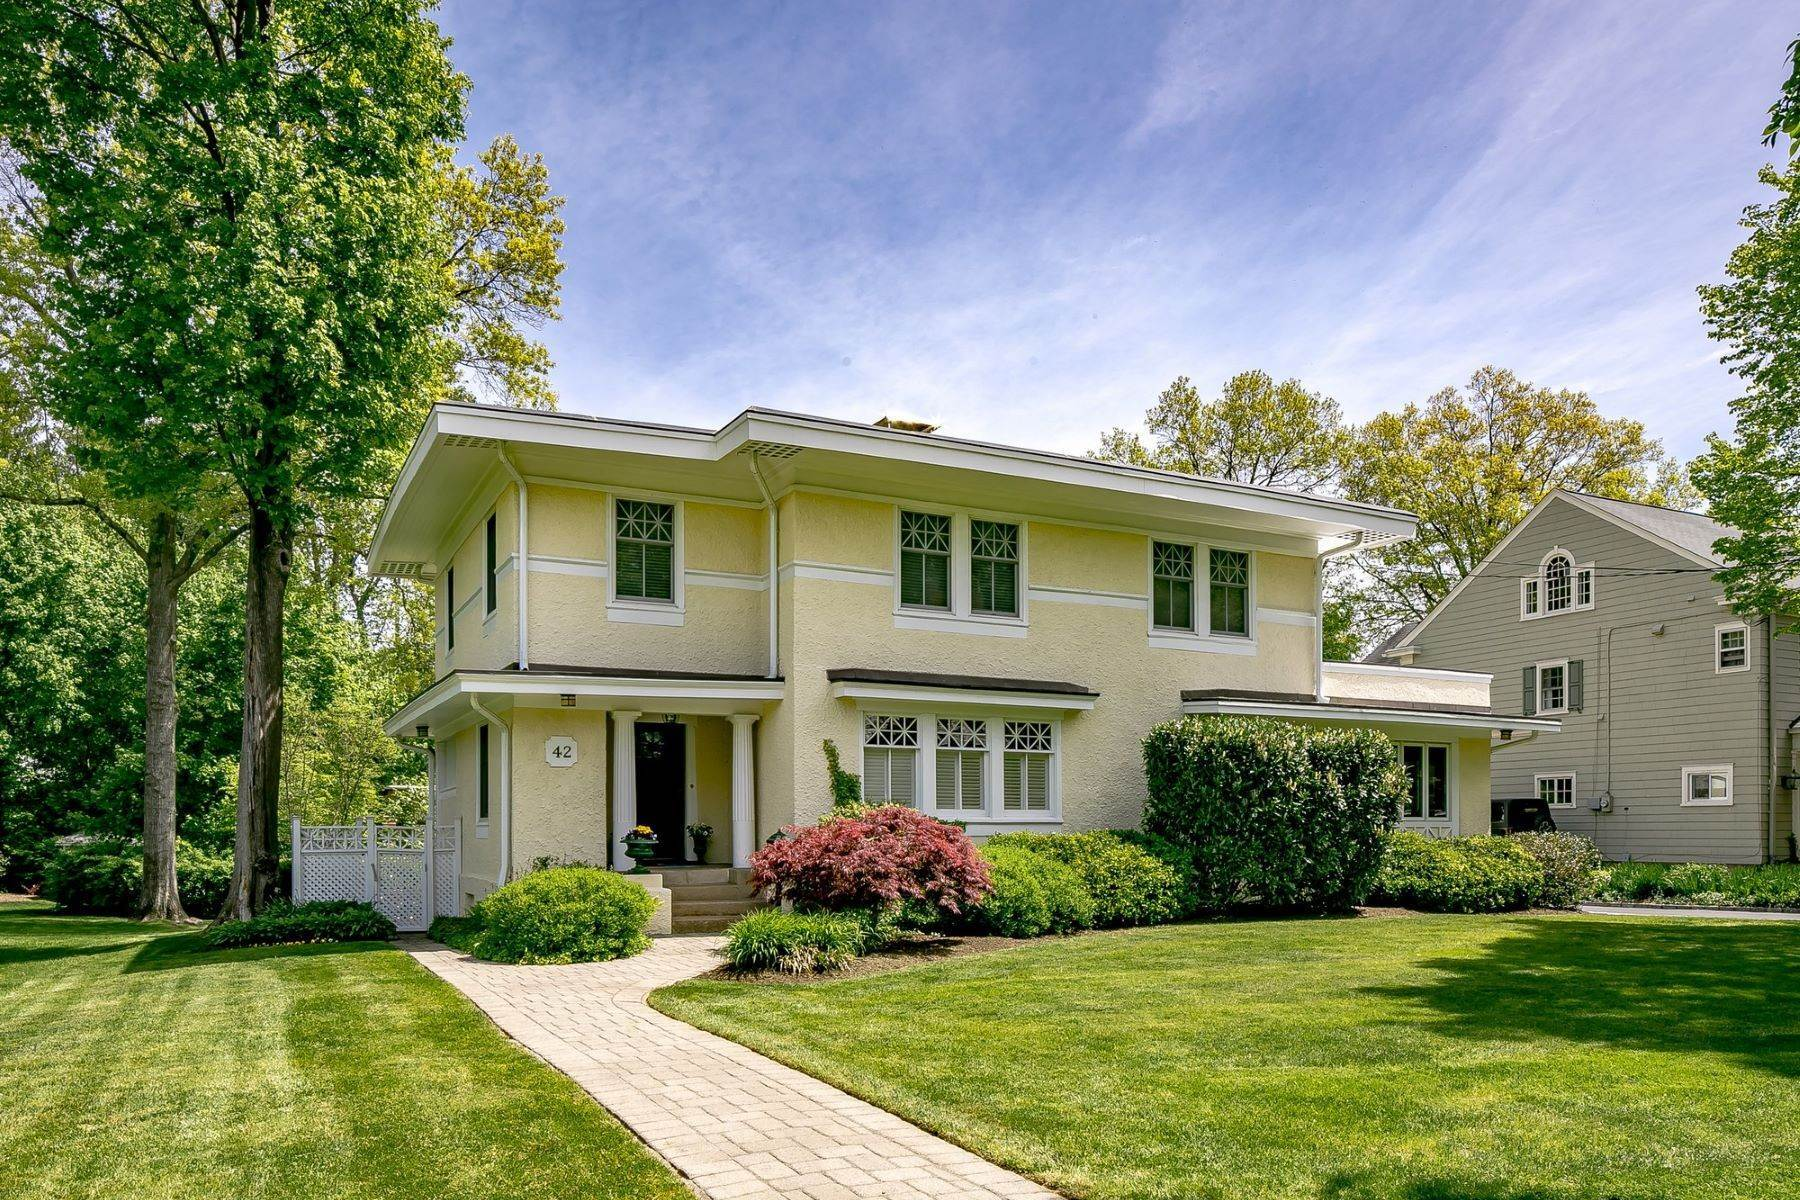 Single Family Homes for Sale at Unique Prairie Home 42 Hillcrest Road Madison, New Jersey 07940 United States